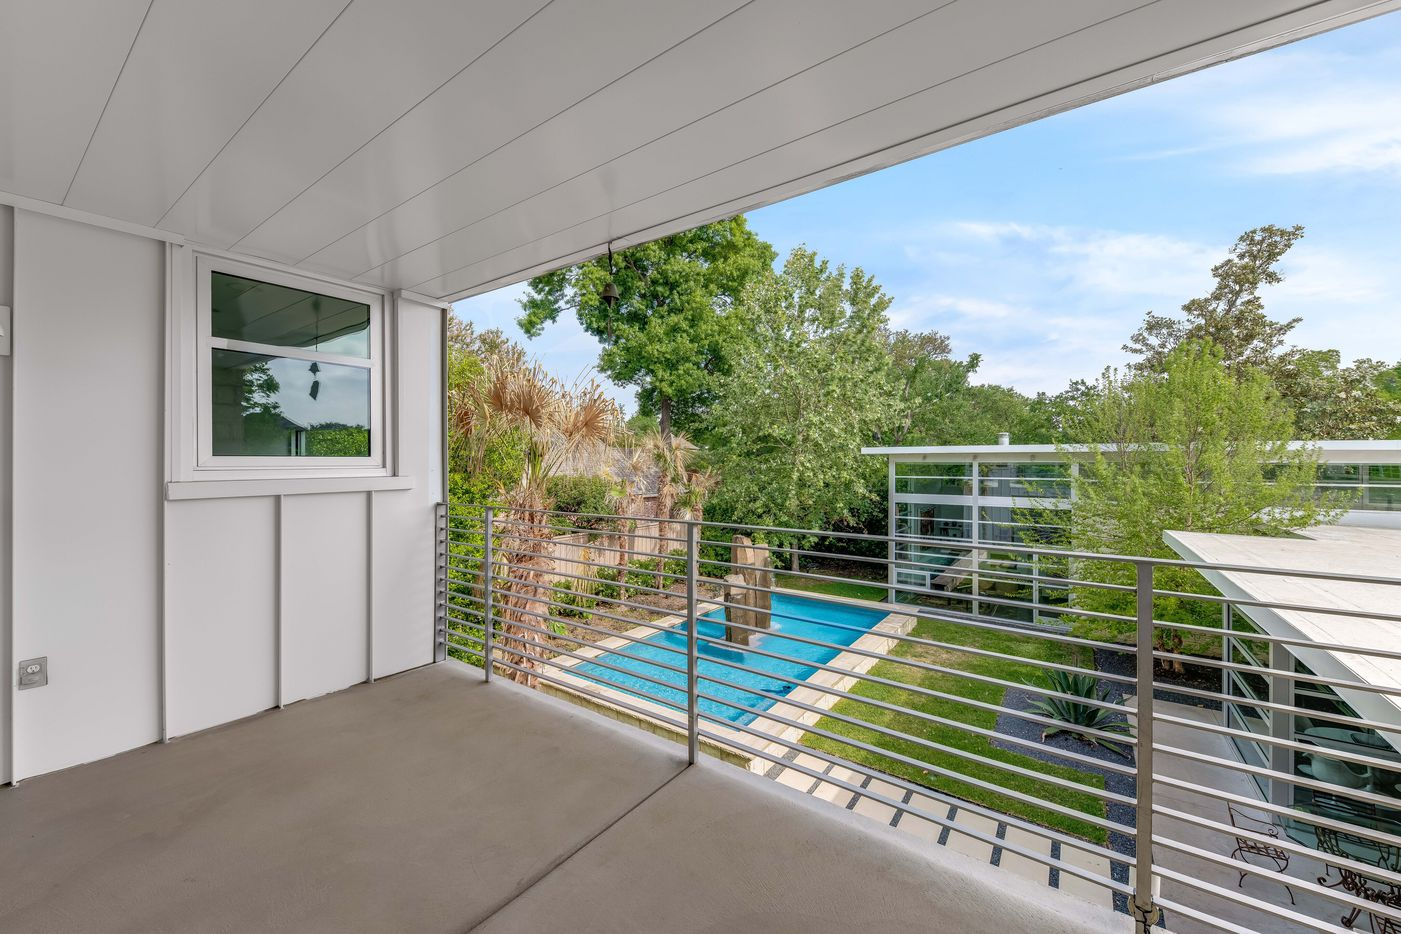 Take a look at the home at 9191 Manchester Drive in Dallas.